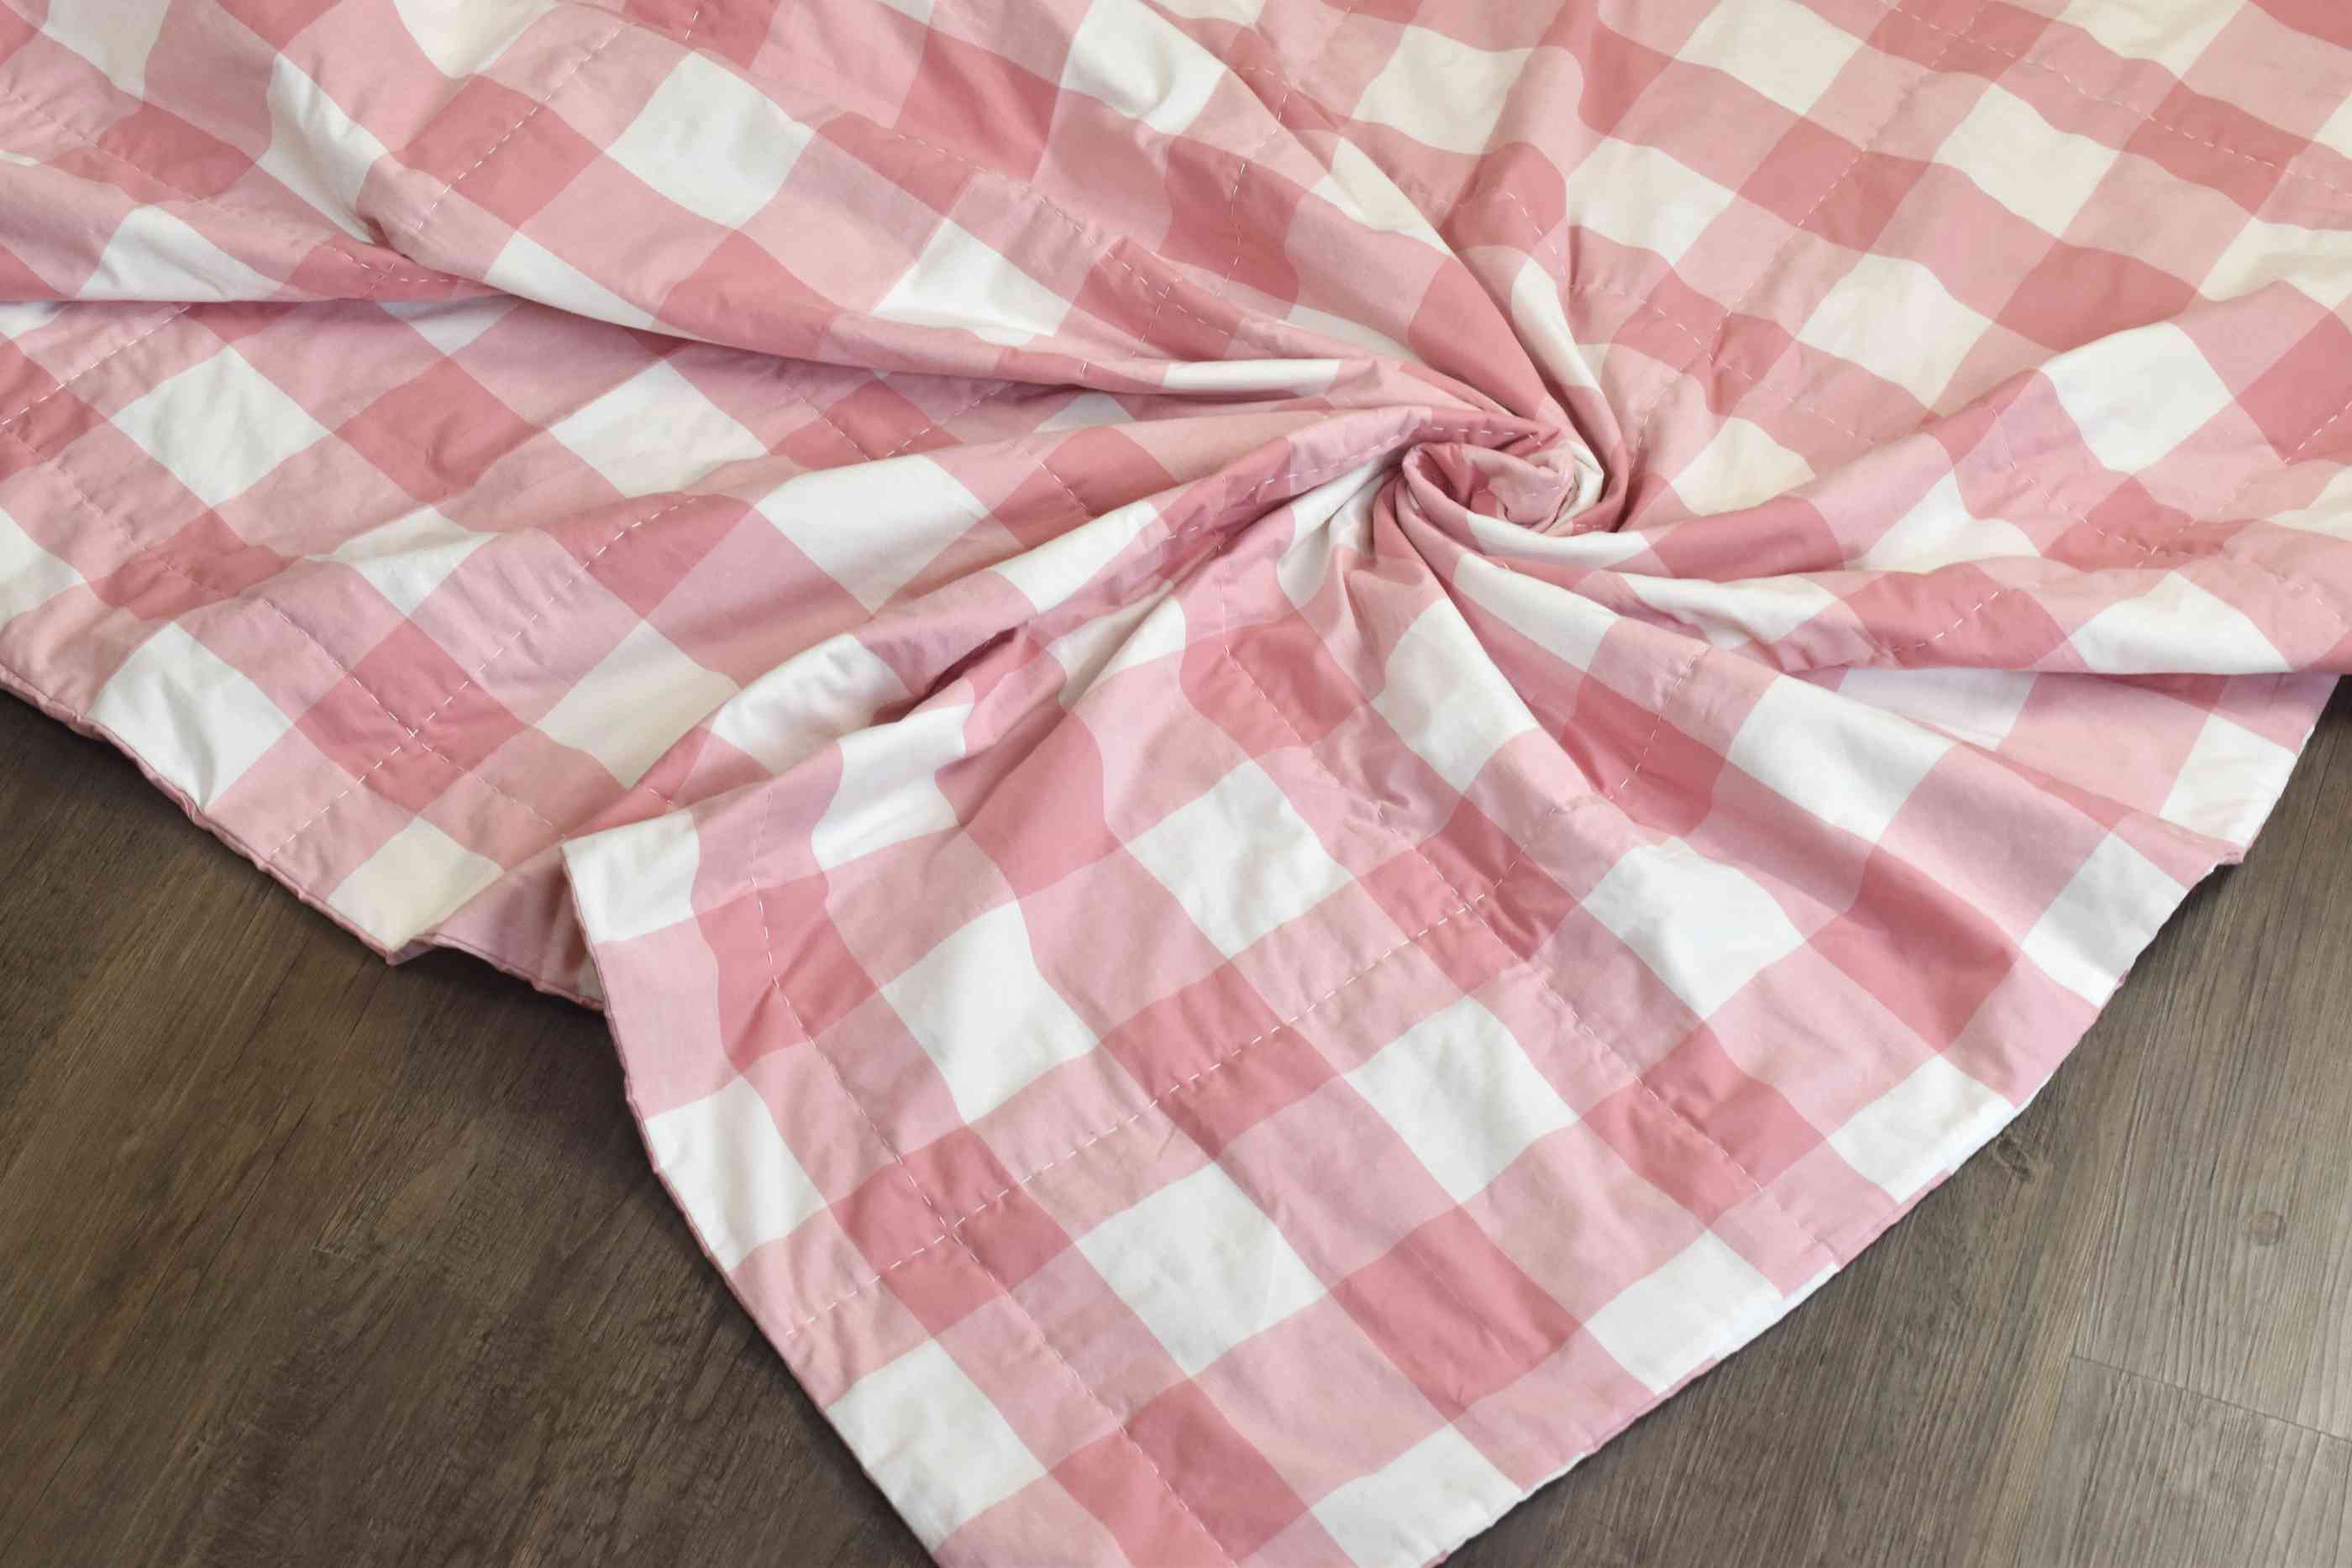 How to Sew a Comforter